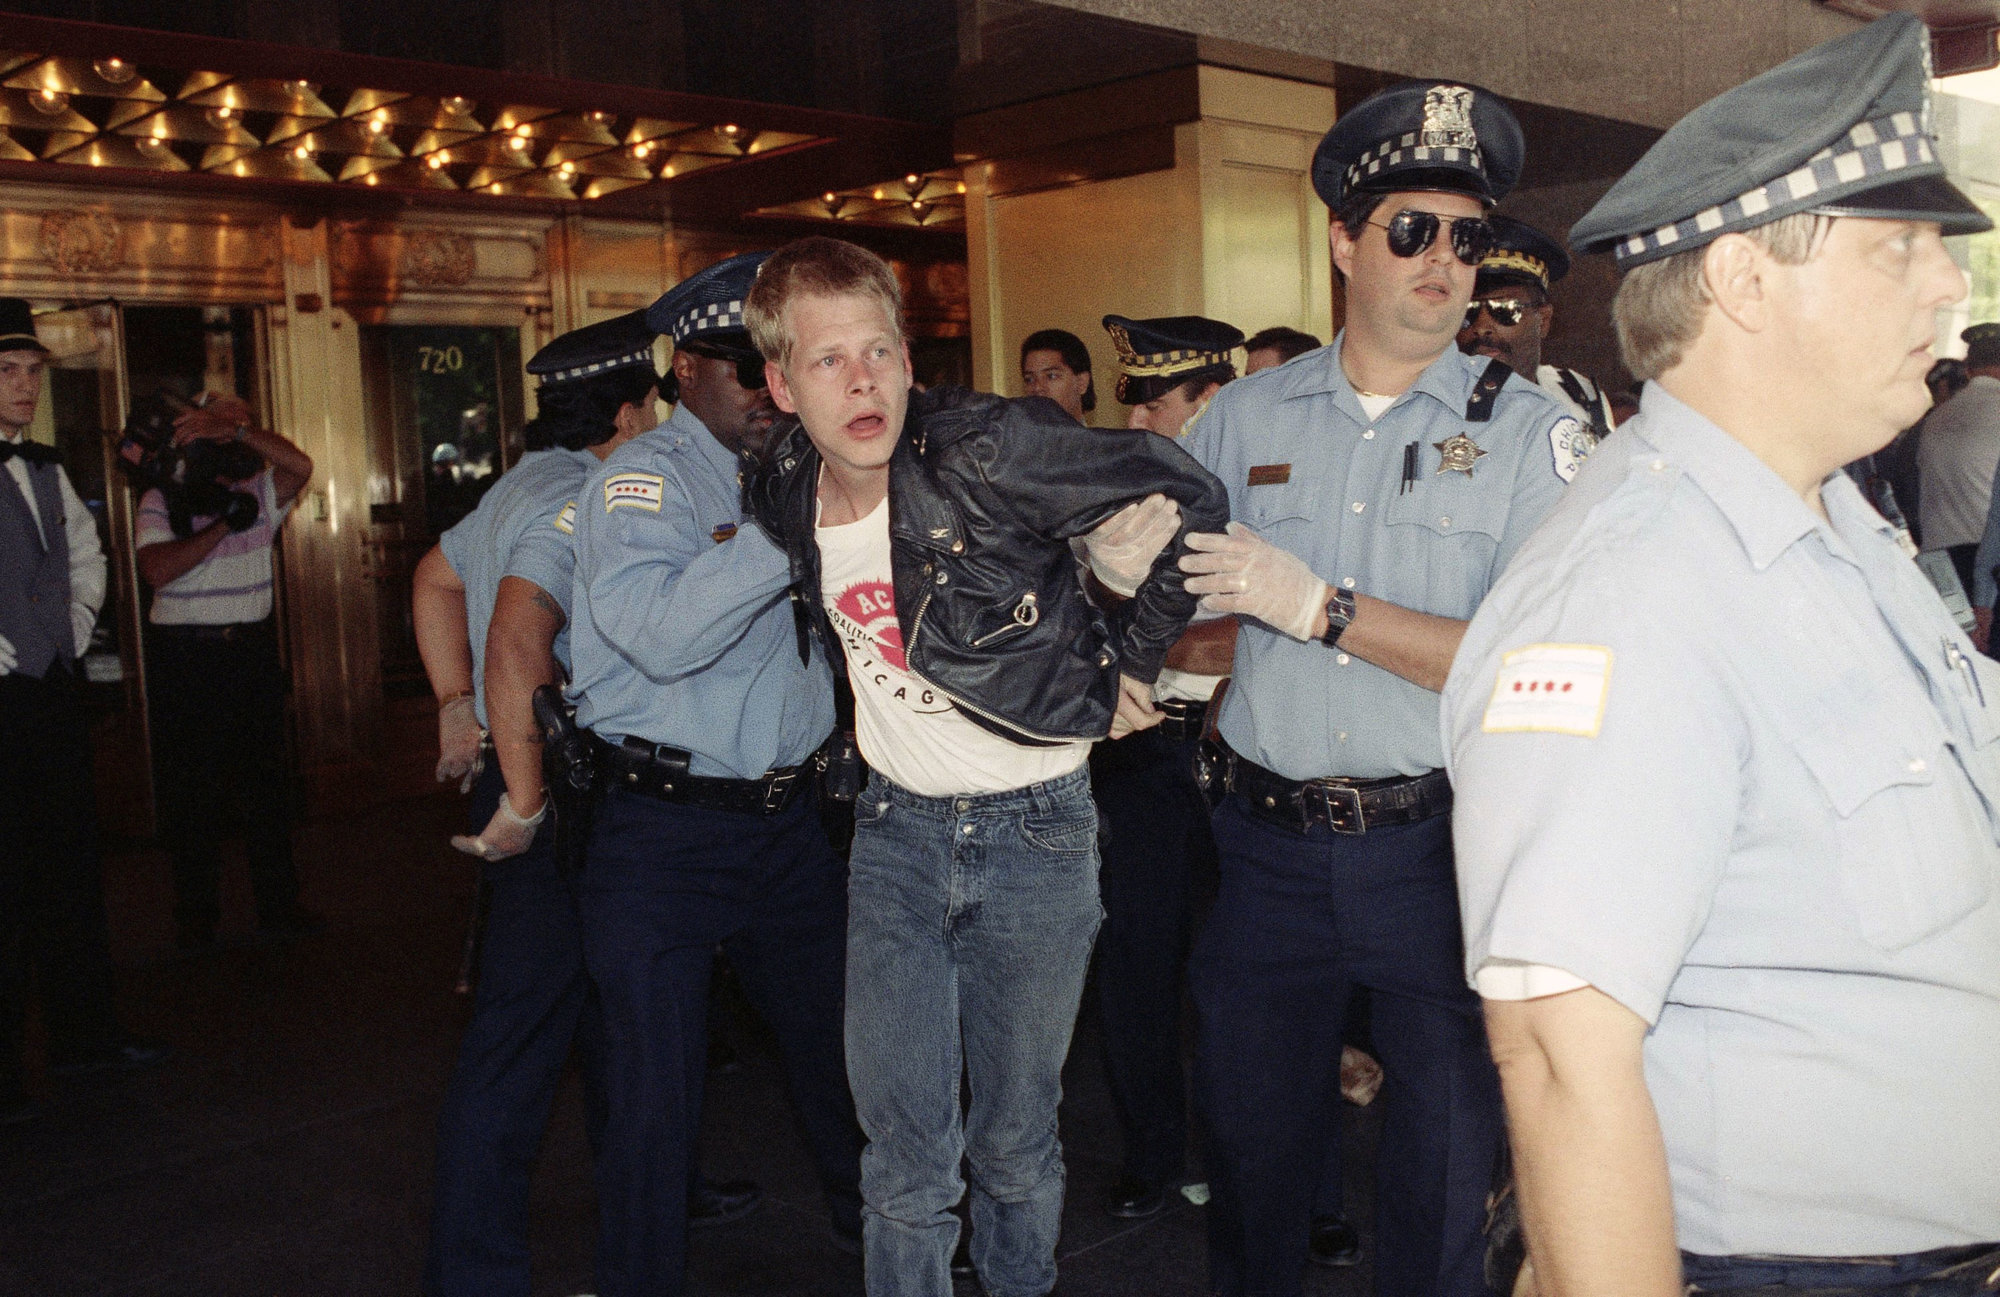 Chicago police officers, wearing rubber gloves, arrest a demonstrator outside the downtown hotel where the American Medical Association is holding its annual meeting in Chicago, June 24, 1991. Members of the AIDS Coalition to Unleash Power (ACT-UP) are protesting the AMA's AIDS policies. (AP Photo/John Swart)